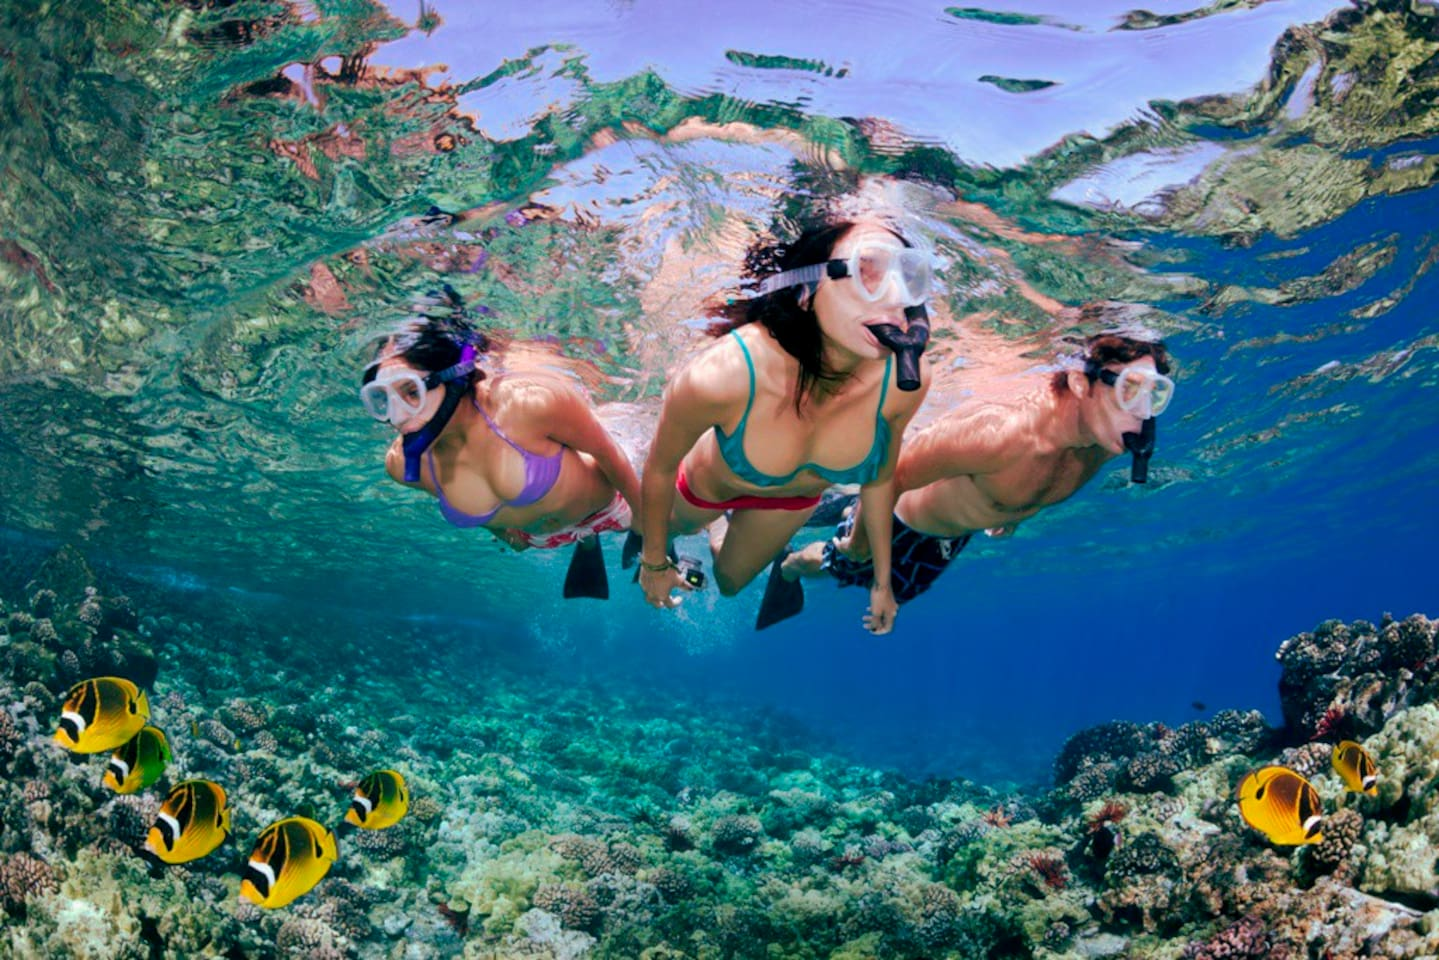 Exotic snorkeling time- group